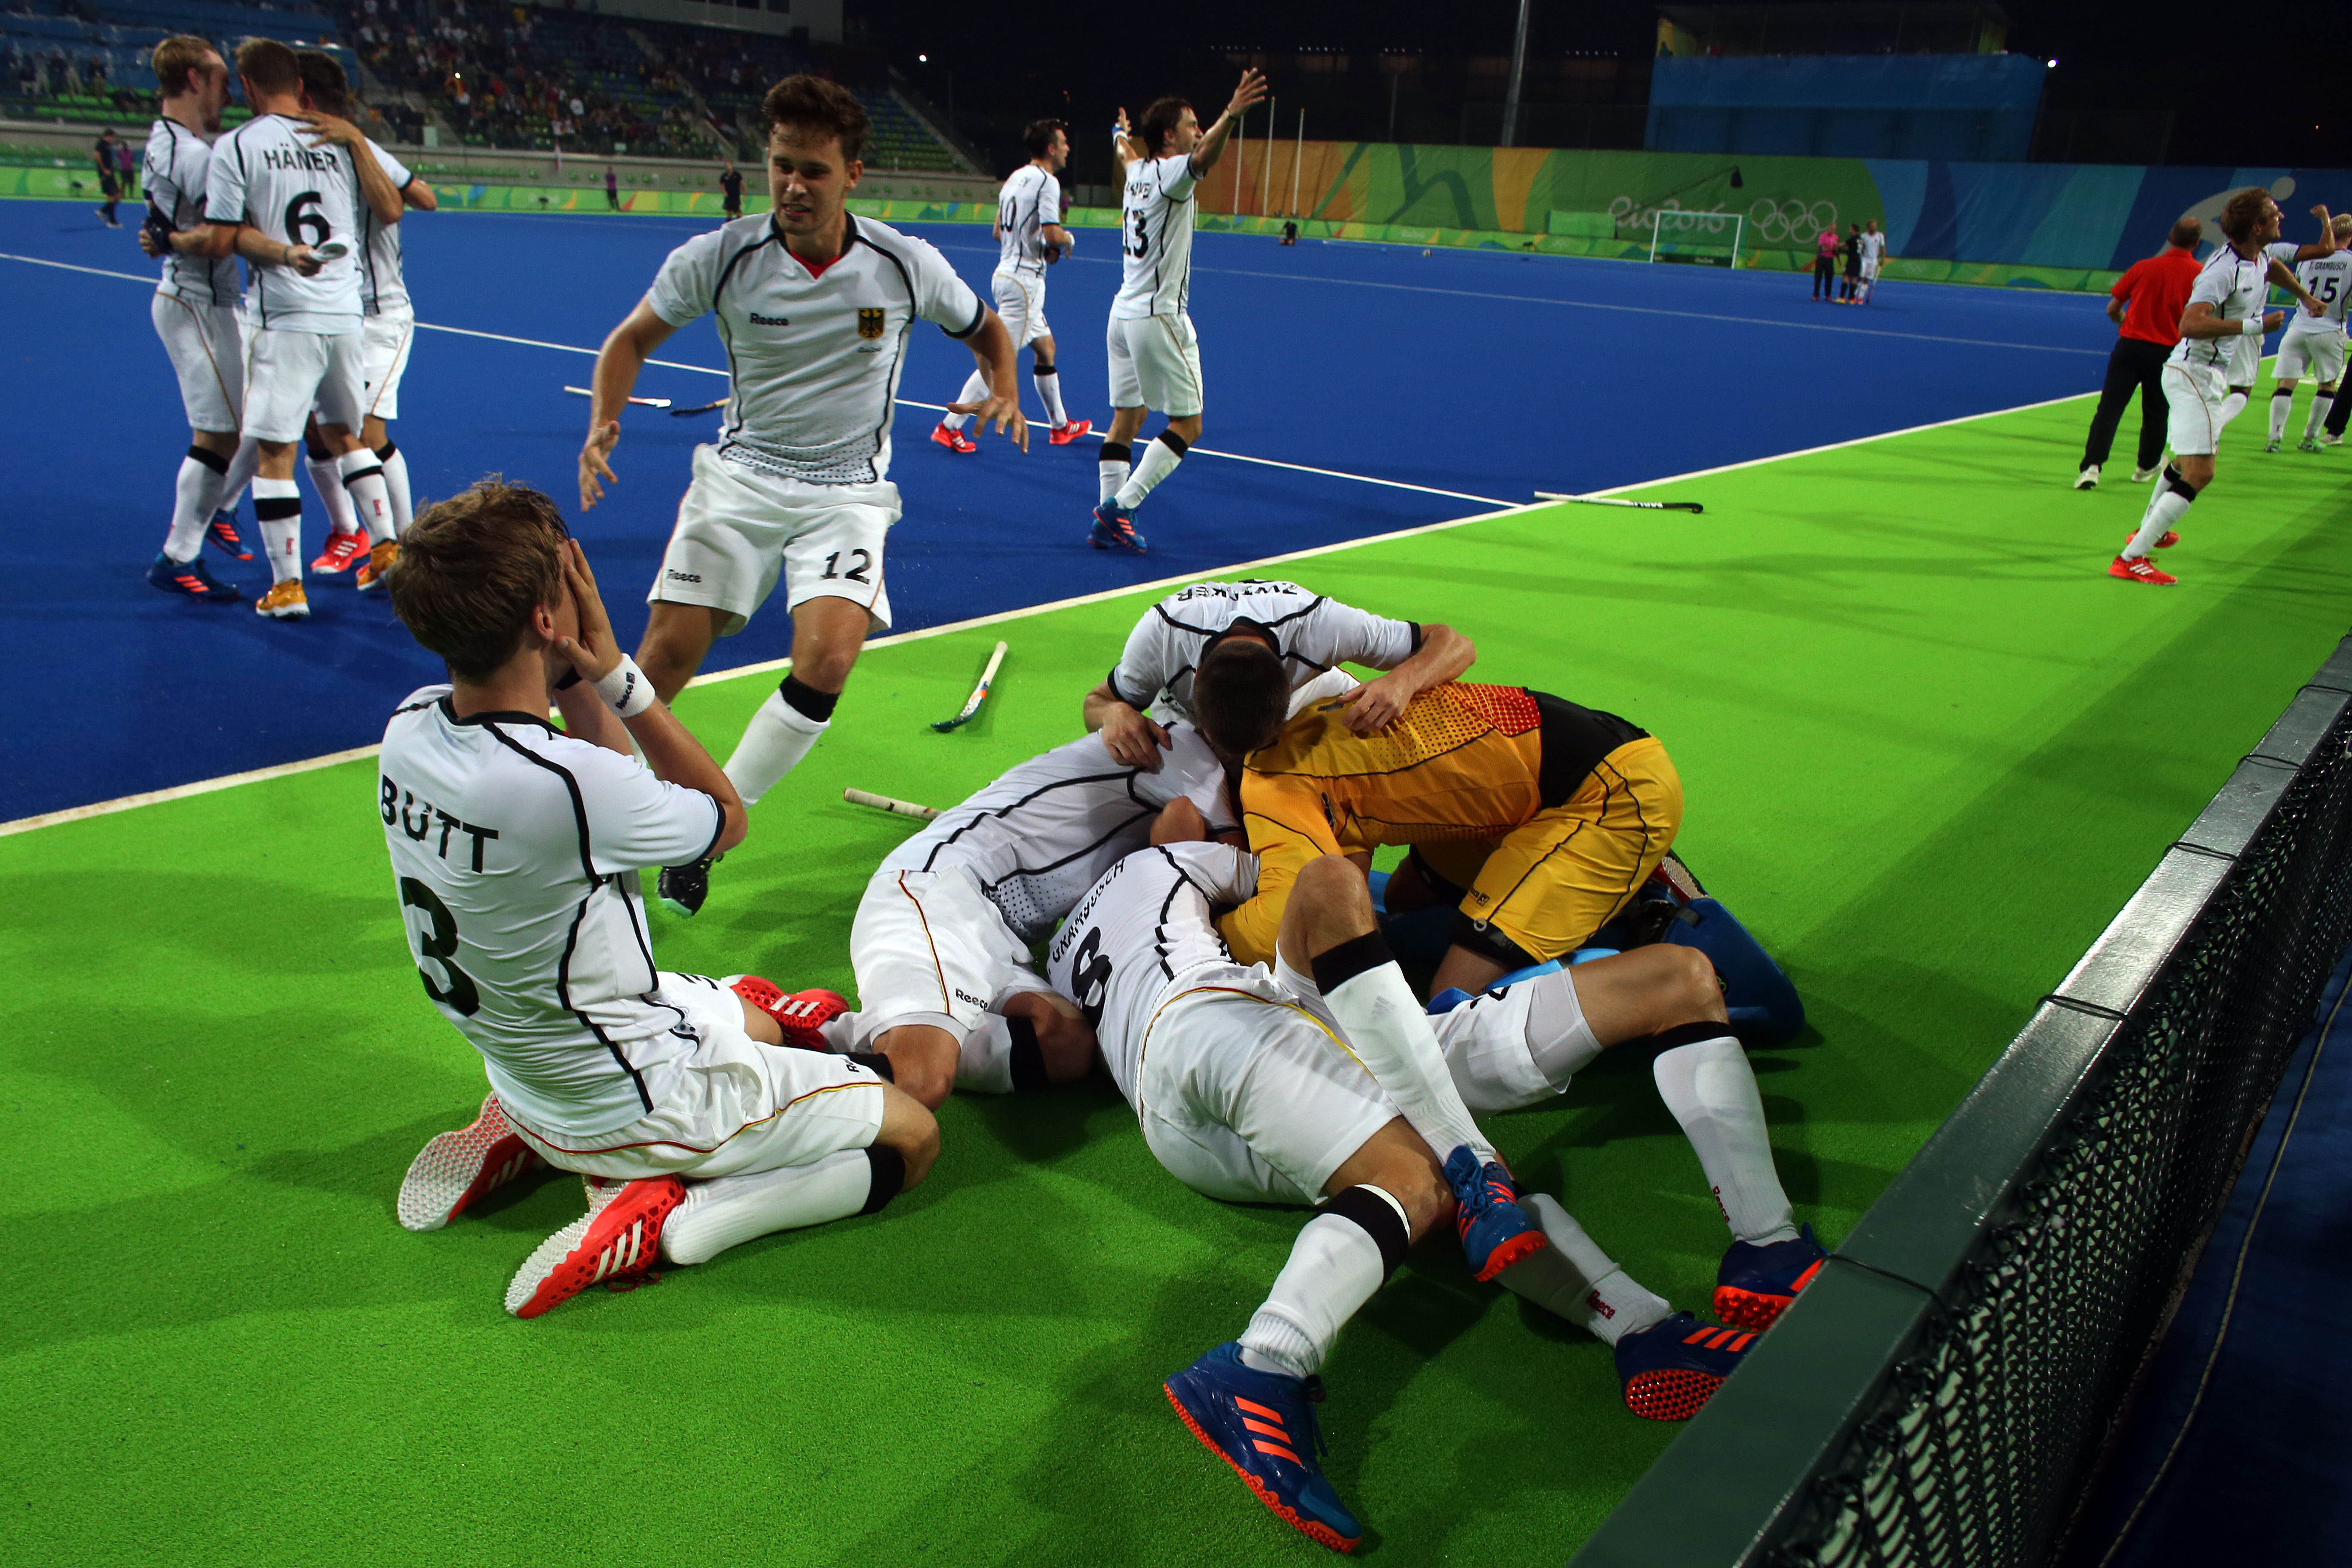 Players from Germany celebrate after scoring against New Zealand and winning the match during a men's field hockey quarter final match at the 2016 Summer Olympics in Rio de Janeiro, Brazil, Sunday, Aug. 14, 2016. (AP Photo/Dario Lopez-Mills)